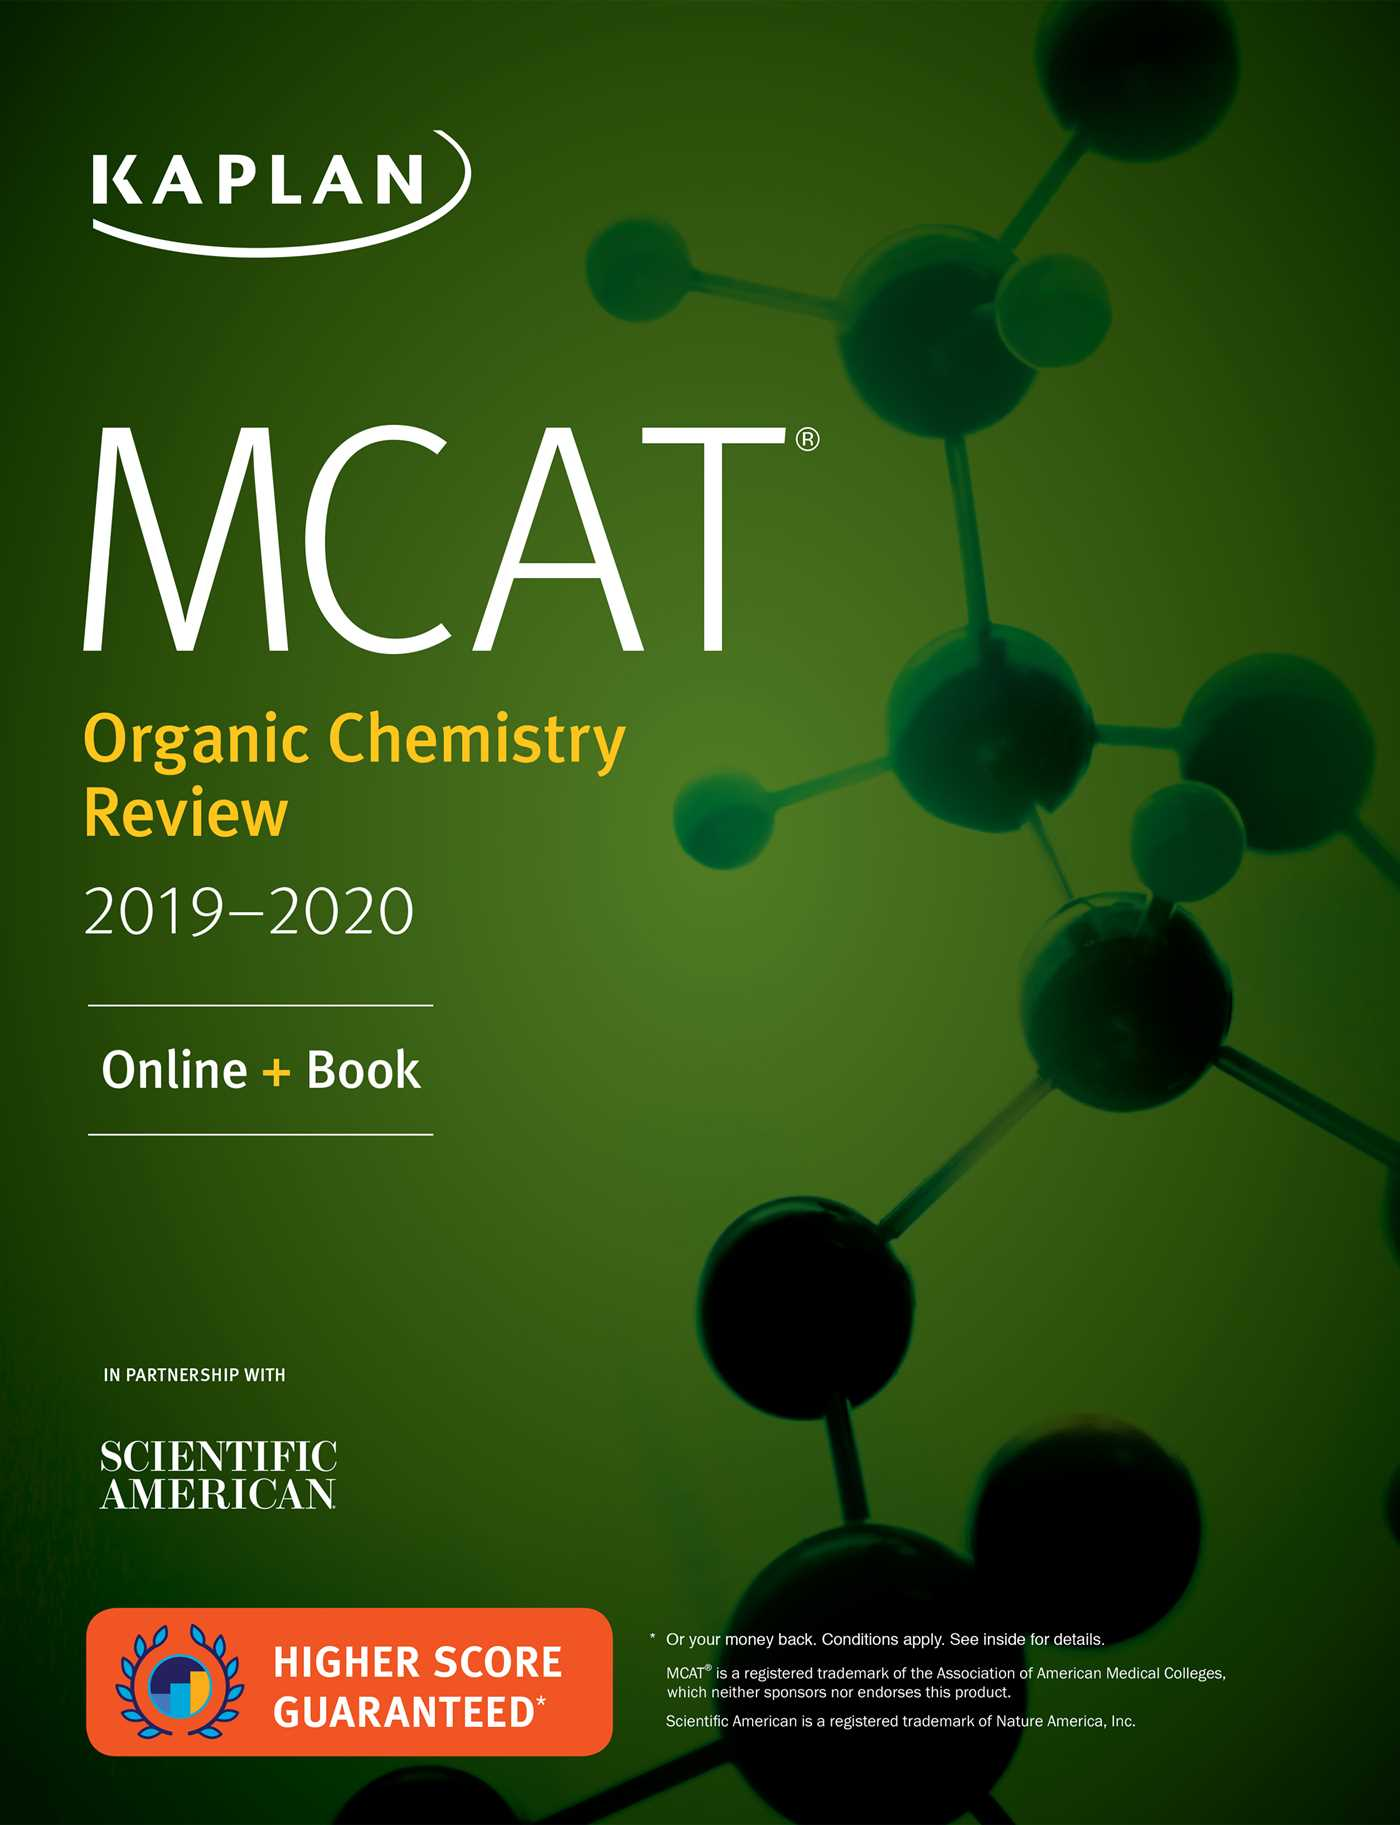 Book Cover Image (jpg): MCAT Organic Chemistry Review 2019-2020